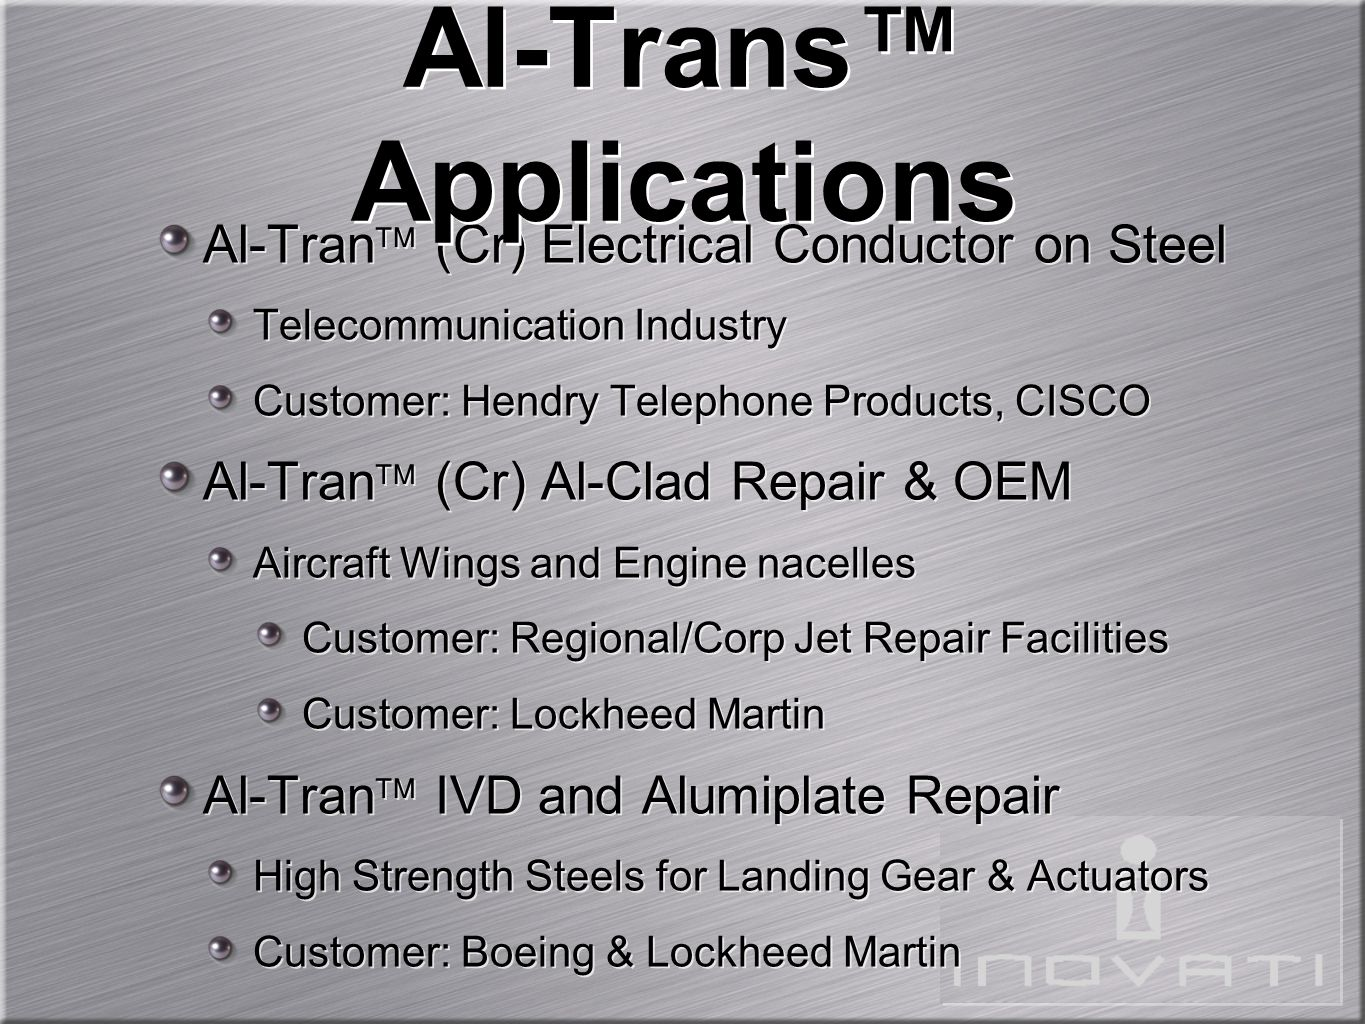 Al-Tran  (Cr) Electrical Conductor on Steel Telecommunication Industry Customer: Hendry Telephone Products, CISCO Al-Tran  (Cr) Al-Clad Repair & OEM Aircraft Wings and Engine nacelles Customer: Regional/Corp Jet Repair Facilities Customer: Lockheed Martin Al-Tran  IVD and Alumiplate Repair High Strength Steels for Landing Gear & Actuators Customer: Boeing & Lockheed Martin Al-Tran  (Cr) Electrical Conductor on Steel Telecommunication Industry Customer: Hendry Telephone Products, CISCO Al-Tran  (Cr) Al-Clad Repair & OEM Aircraft Wings and Engine nacelles Customer: Regional/Corp Jet Repair Facilities Customer: Lockheed Martin Al-Tran  IVD and Alumiplate Repair High Strength Steels for Landing Gear & Actuators Customer: Boeing & Lockheed Martin Al-Trans™ Applications